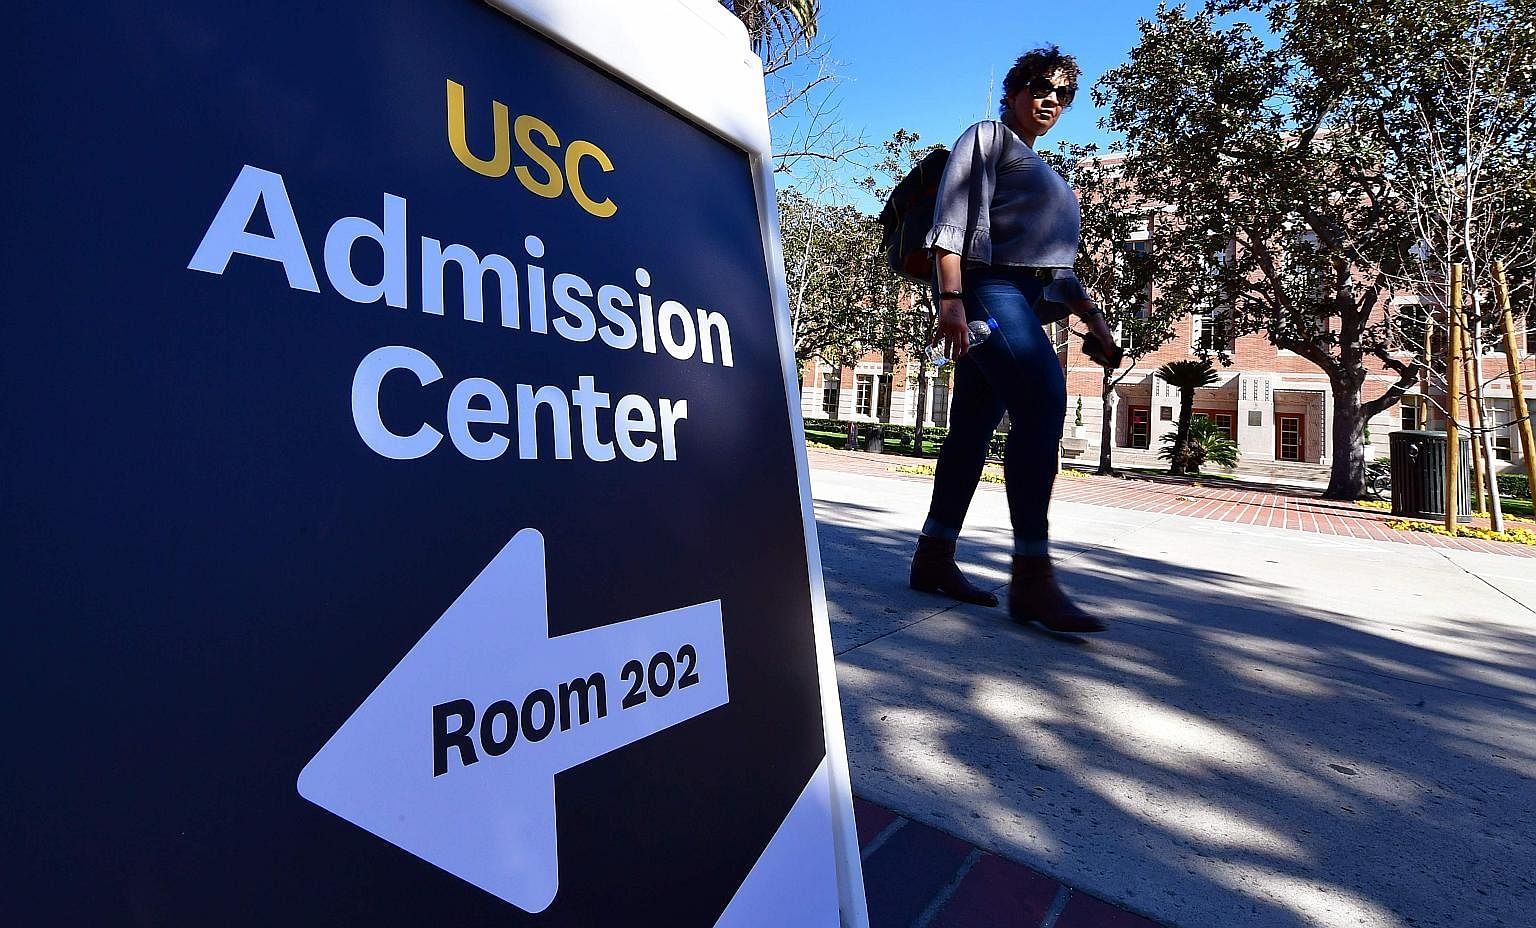 """College admissions consultant William """"Rick"""" Singer has pleaded guilty to charges related to the scandal, while actress Felicity Huffman (centre) and actress Lori Loughlin are allegedly involved. The University of Southern California (USC) in Los Ang"""